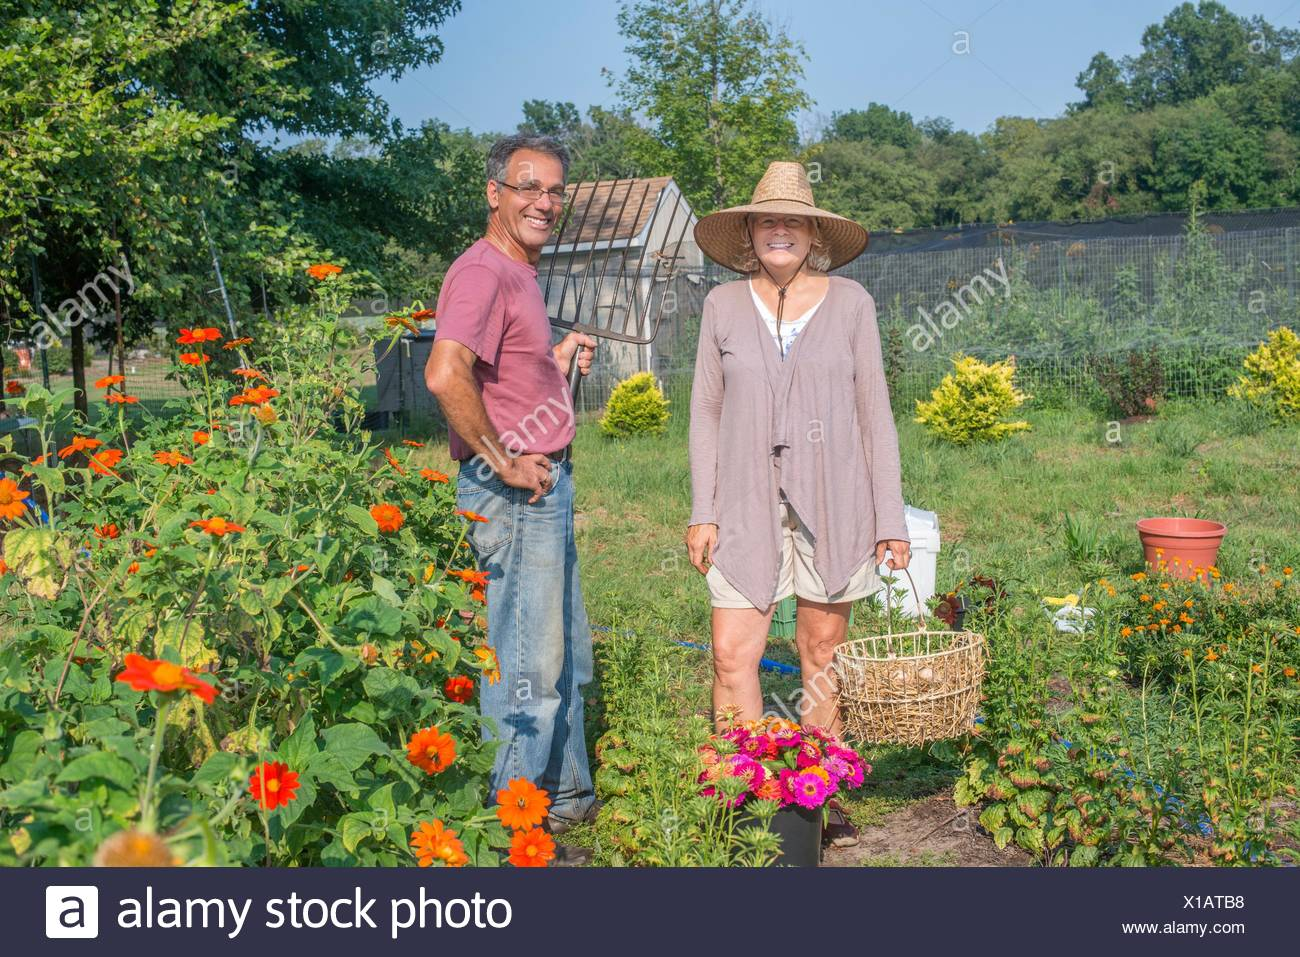 Portrait of male and female farmers in garden - Stock Image